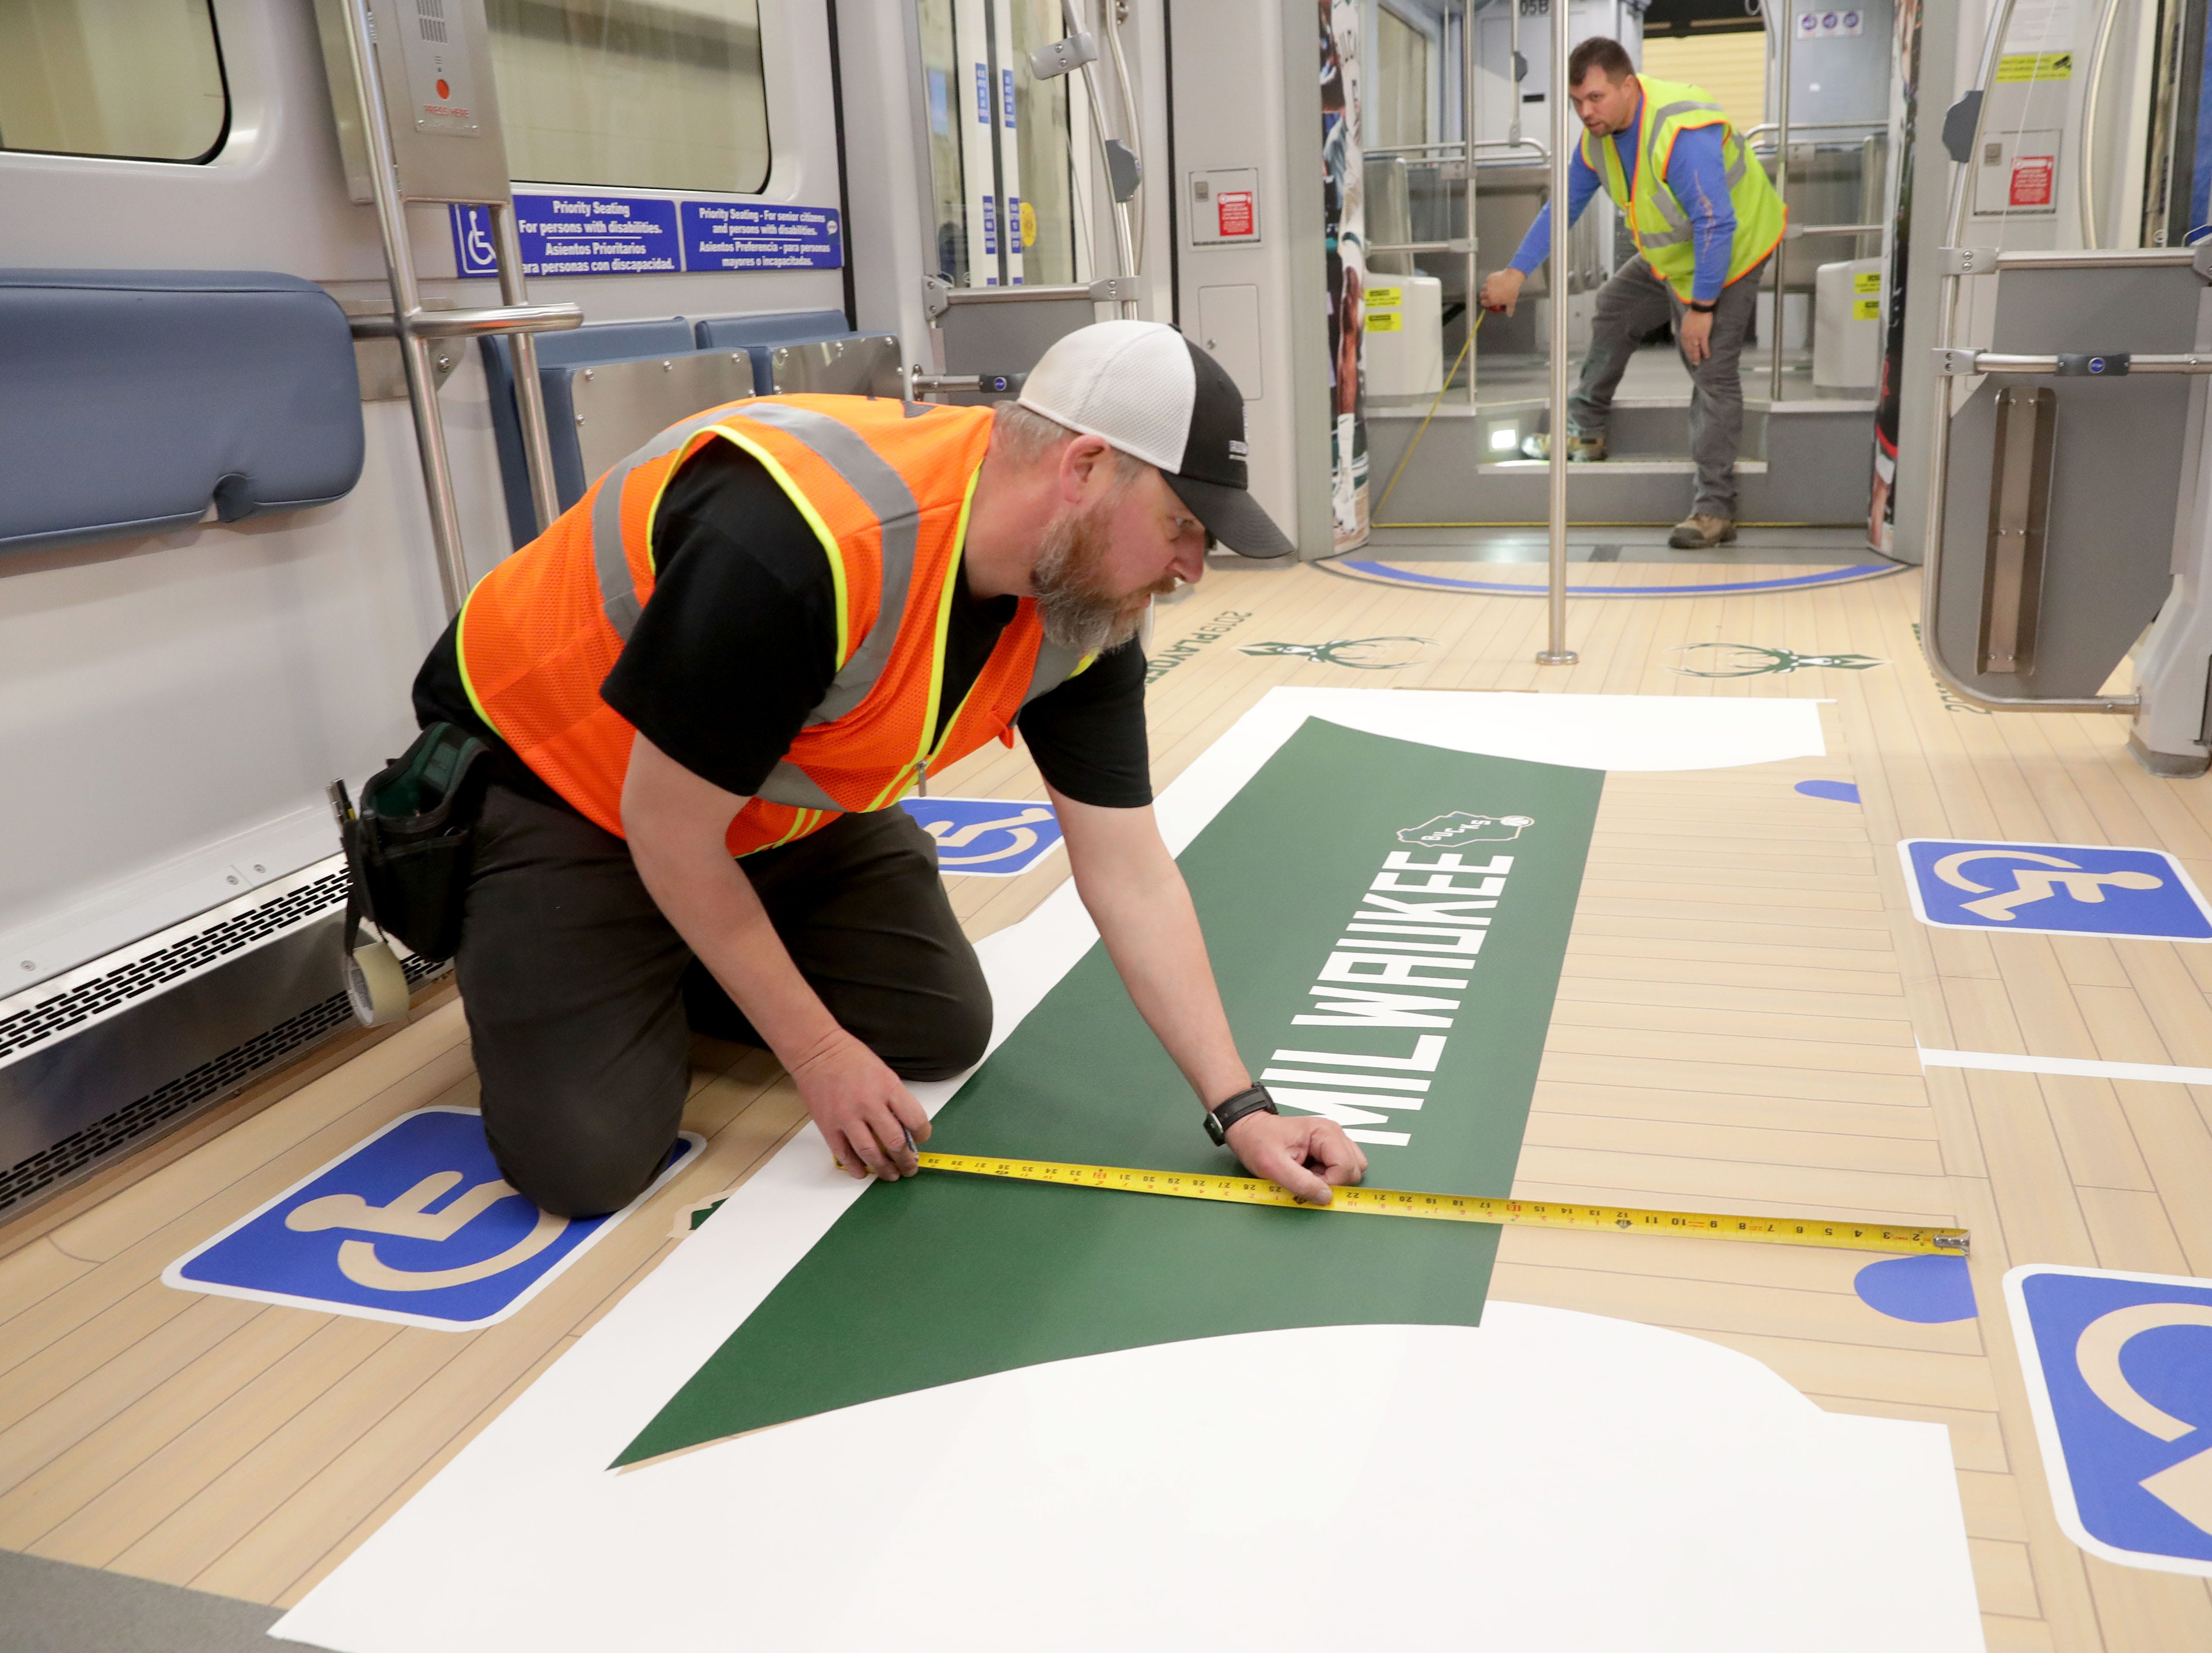 (OK FOR FRIDAY 4/12 PRINT - ONLINE EMBARGO UNTIL 10:45 FRIDAY 4/12) Eric Ewald (left) with Signs and Lines by Stretch measures a logo before placing it on the floor as co-worker Matt Callies take a measurement.  Bucks decoration up on the ceiling of the streetcar. One of Milwaukee's streetcars, known as The Hop is fitted with a replica Bucks court on the floor in support of the Bucks playoff run in Milwaukee on Thursday, April 11, 2019. In addition to the interior flair, the exterior was being wrapped in Milwaukee Bucks colors.  Photo by Mike De Sisti/Milwaukee Journal Sentinel